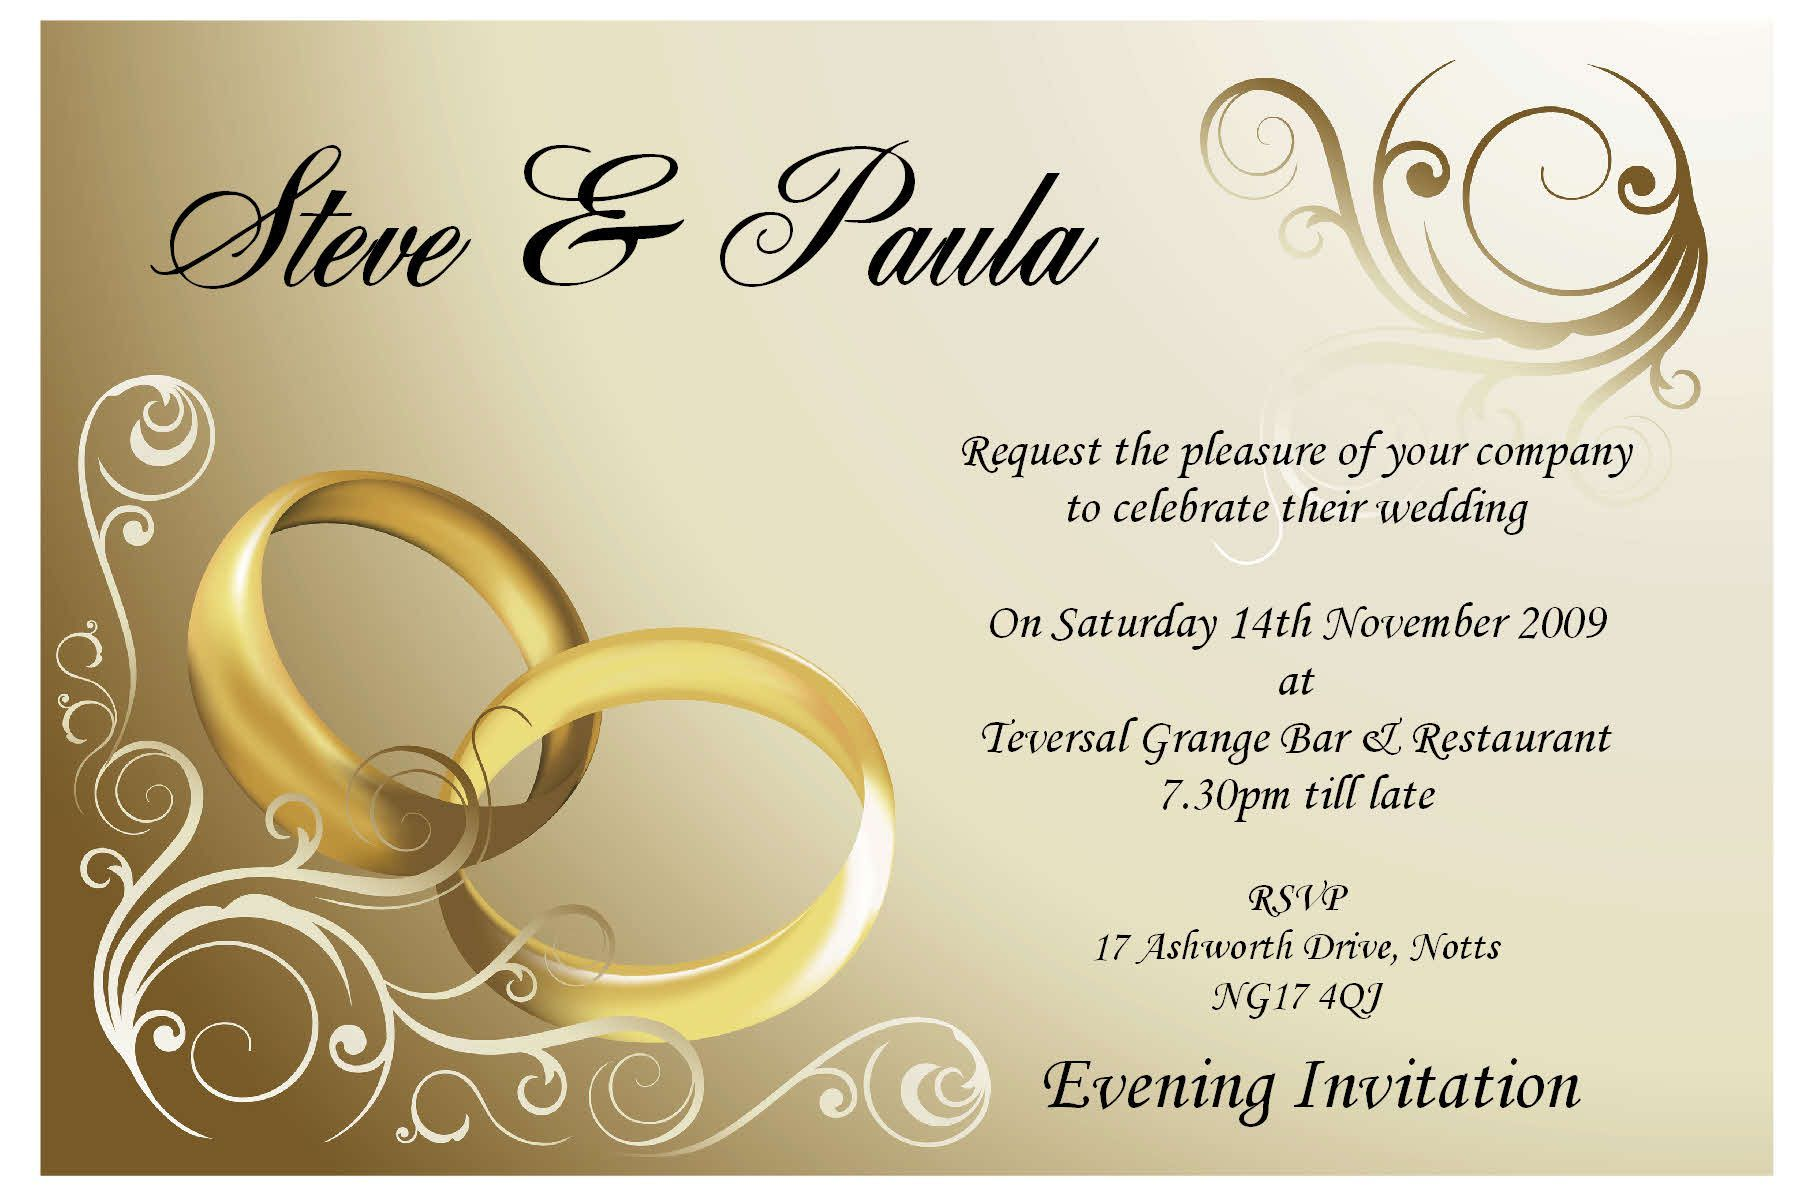 Wedding Invitation Card Sample: Wedding Invitation Card Design Online Free